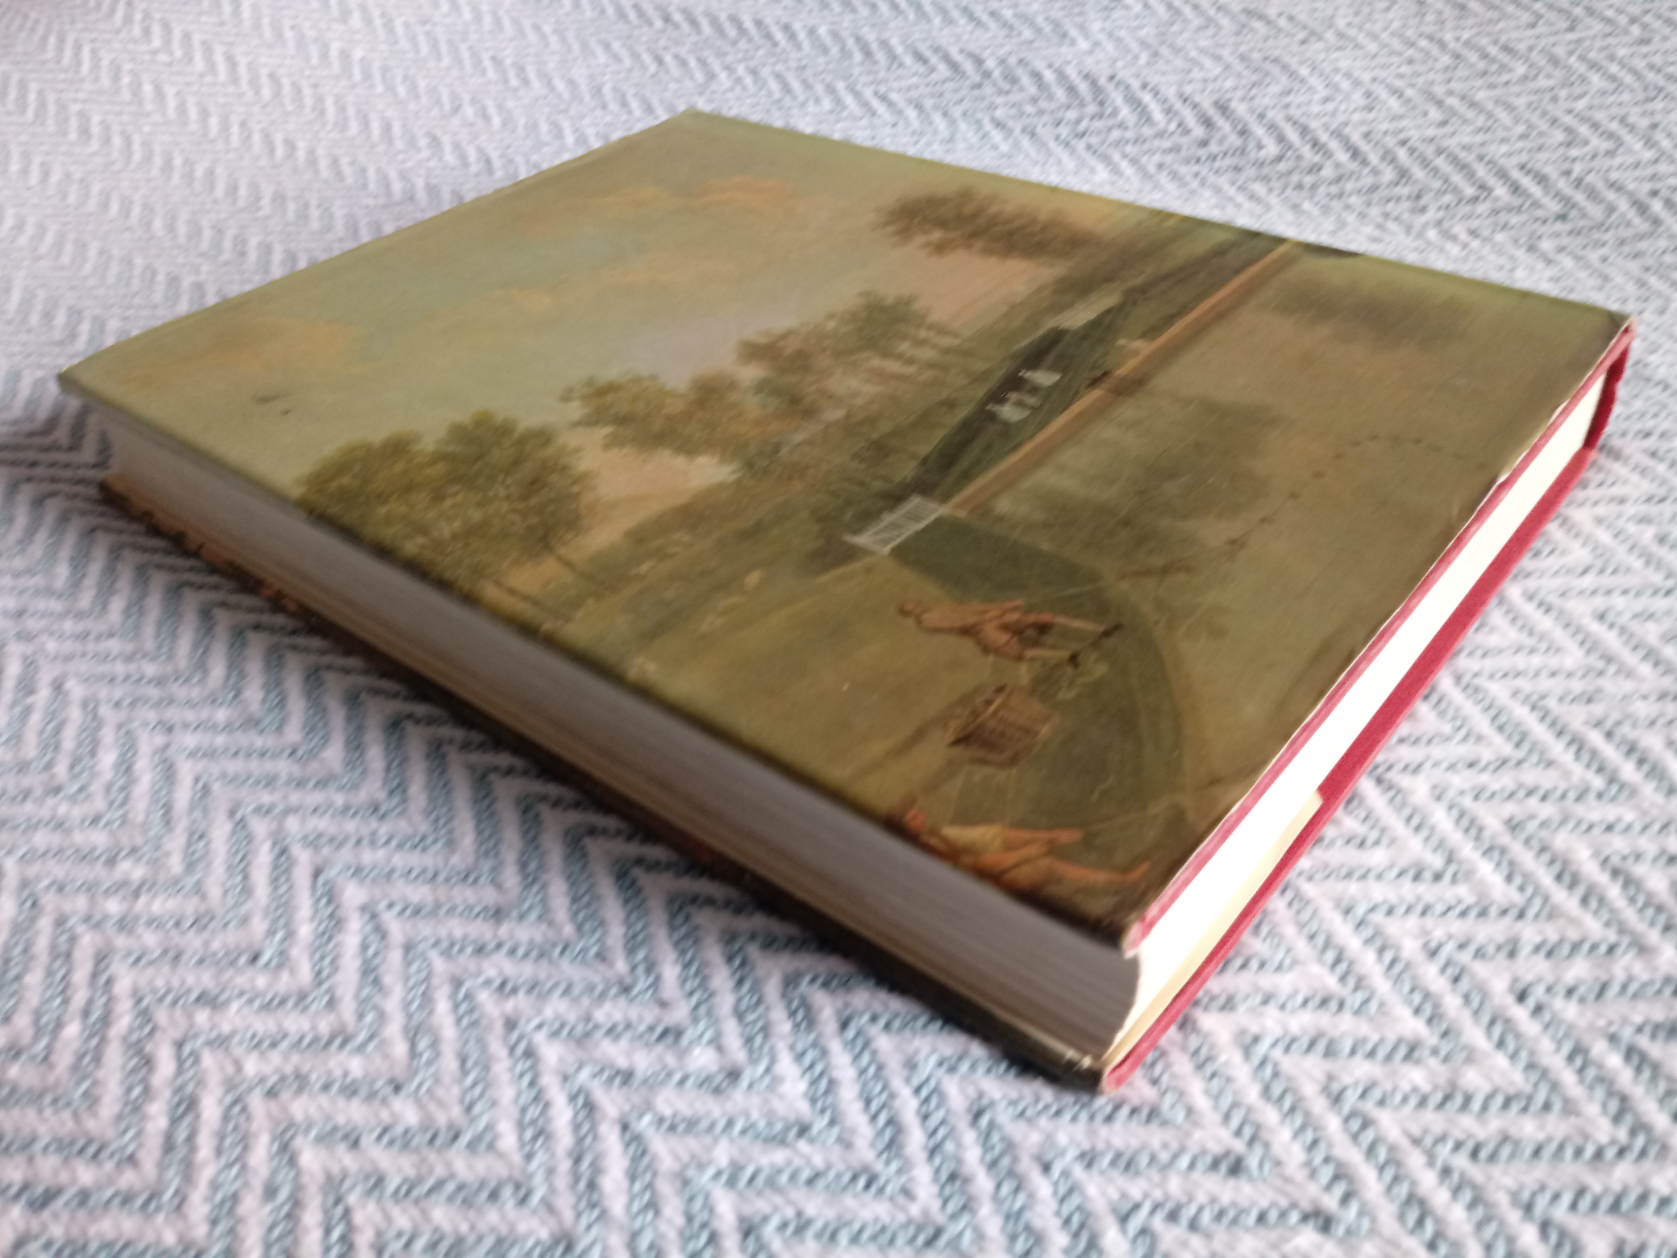 Life In The English Country House A Social and Architectural History by Mark Girouard hardback - Image 2 of 3